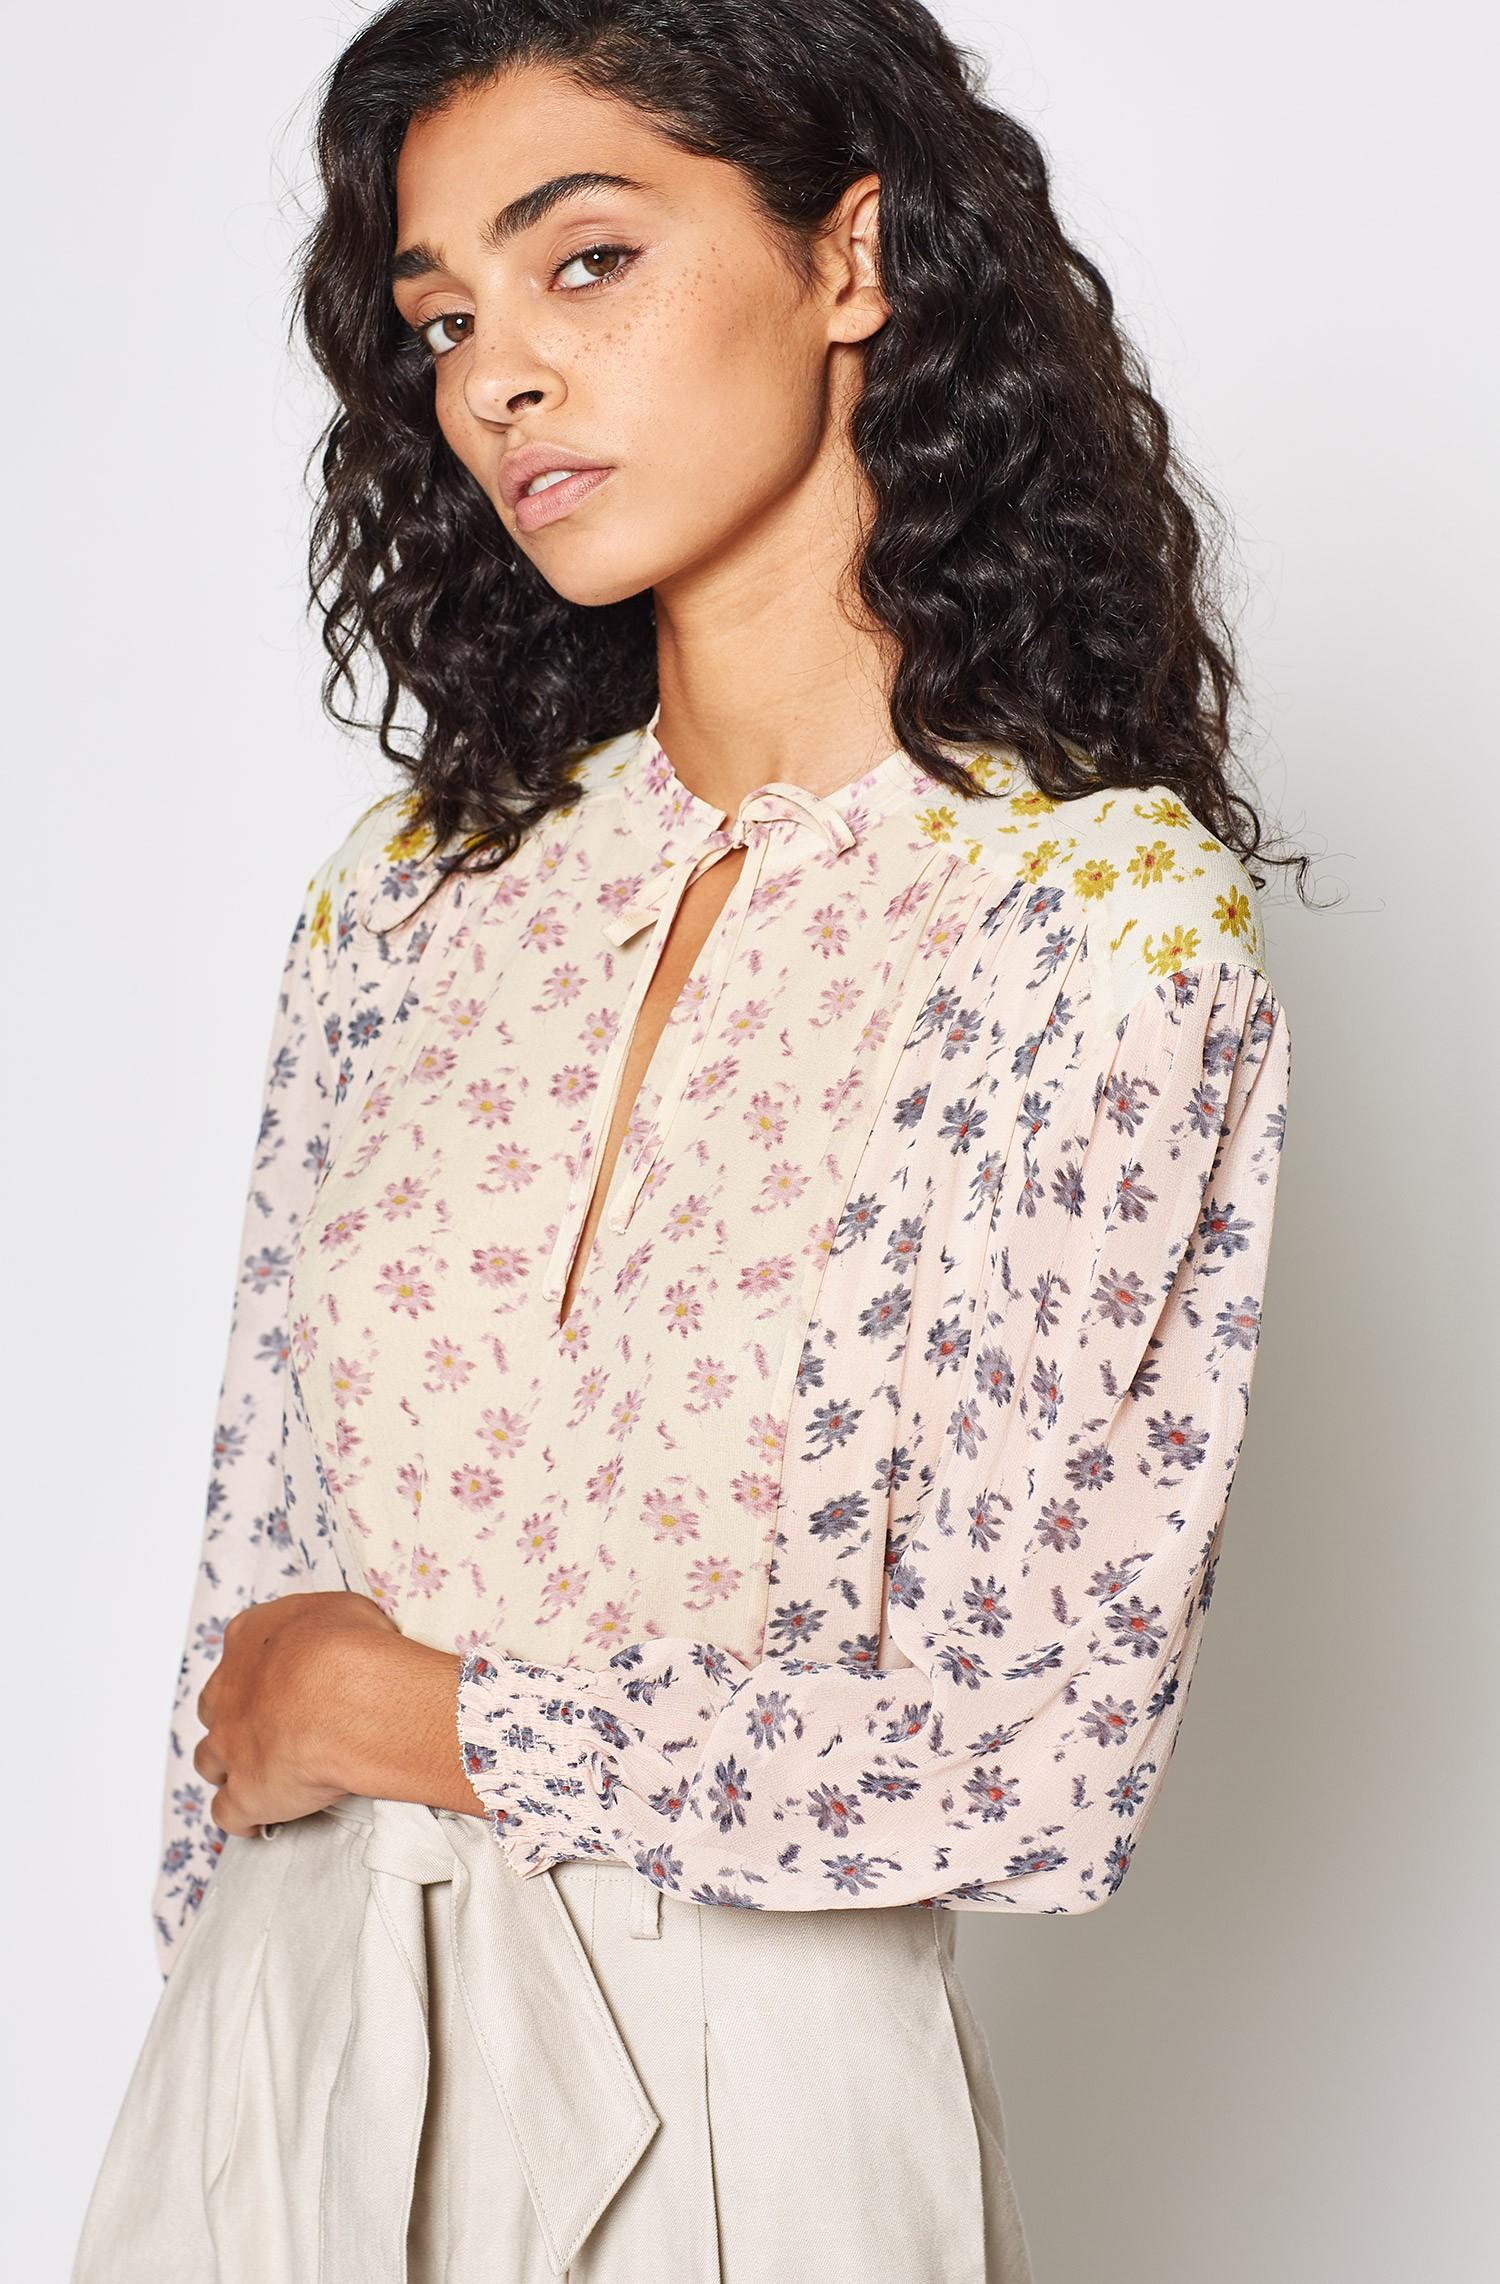 67d37268cfe62 Joie Tyla Silk Floral Top - Lyst